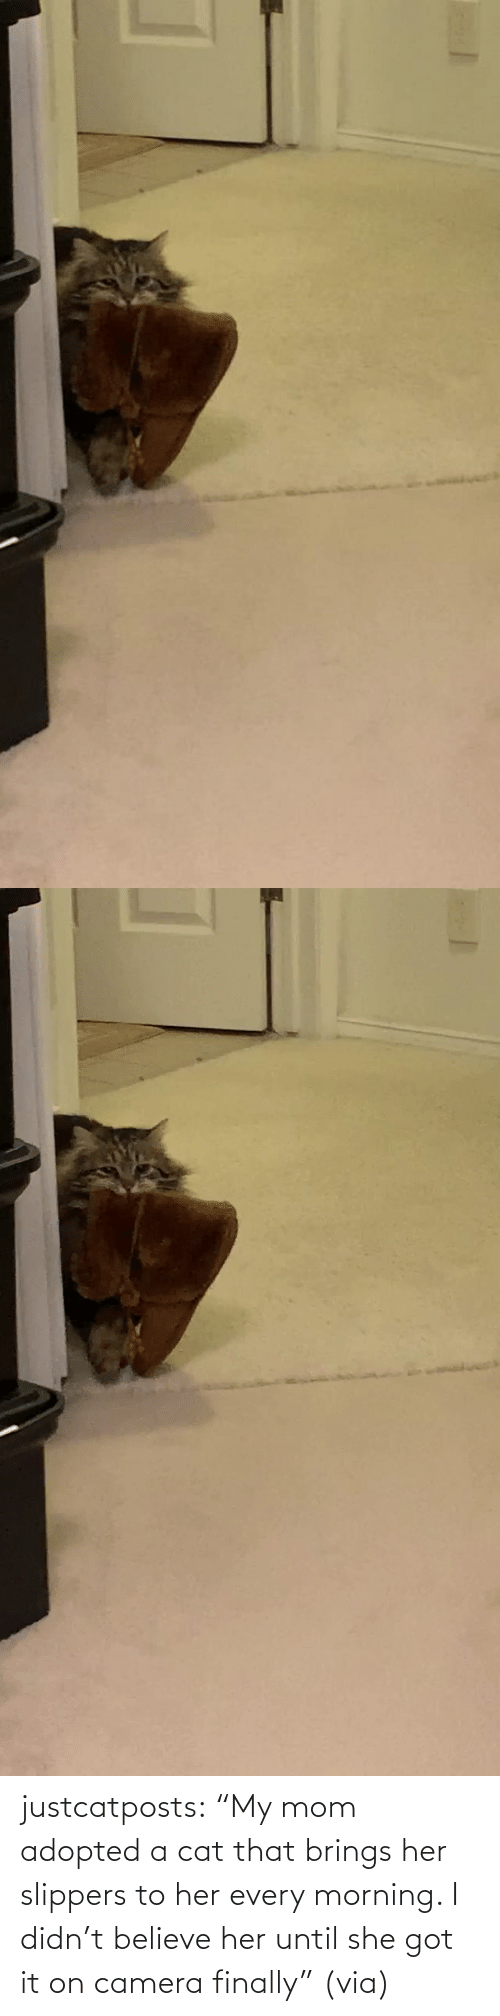 "Mom: justcatposts:  ""My mom adopted a cat that brings her slippers to her every morning. I didn't believe her until she got it on camera finally"" (via)"